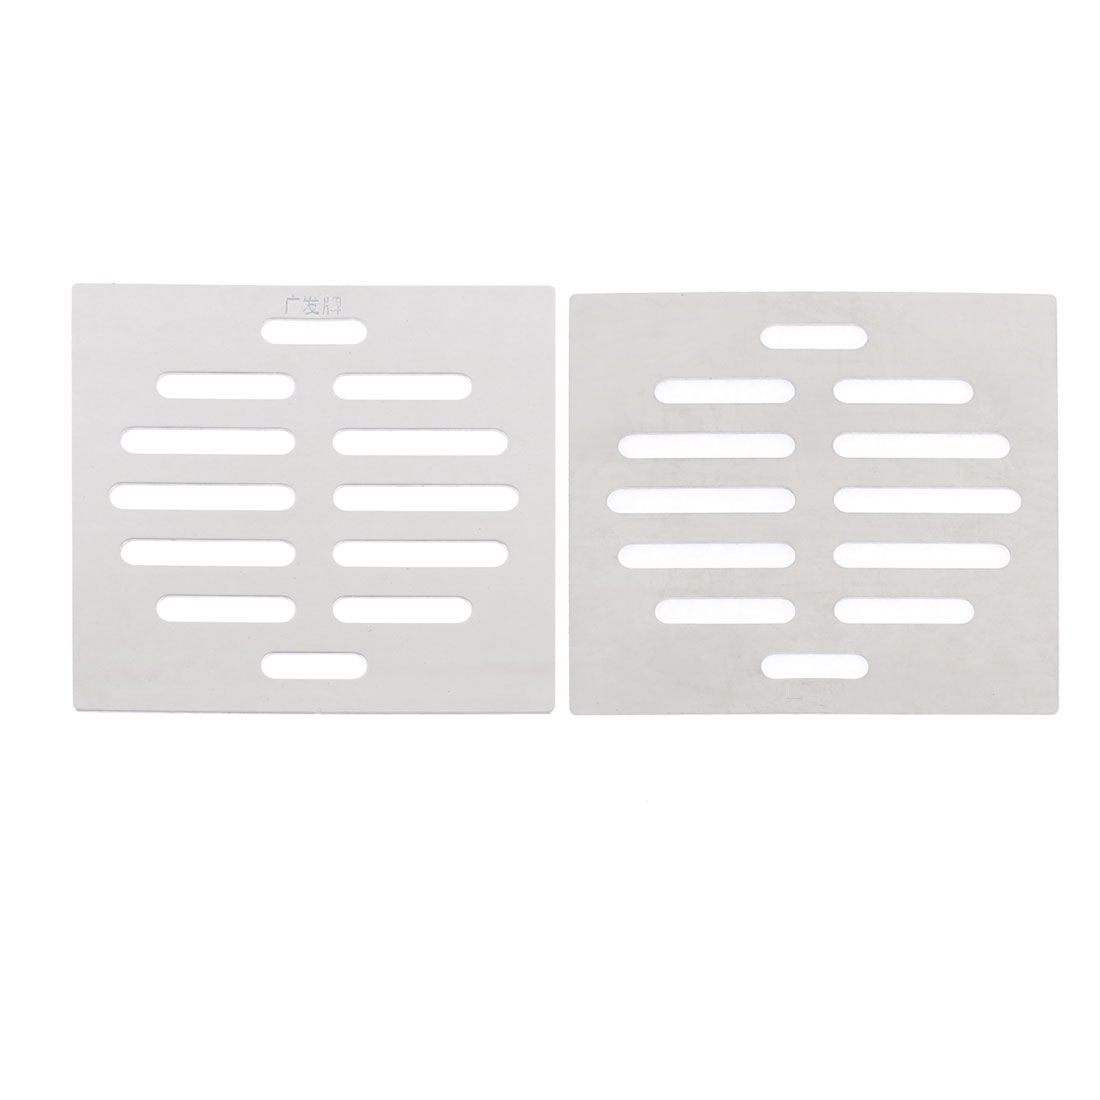 Kitchen Bathroom Square Floor Drain Drainer Cover 10cm x 10cm 2Pcs